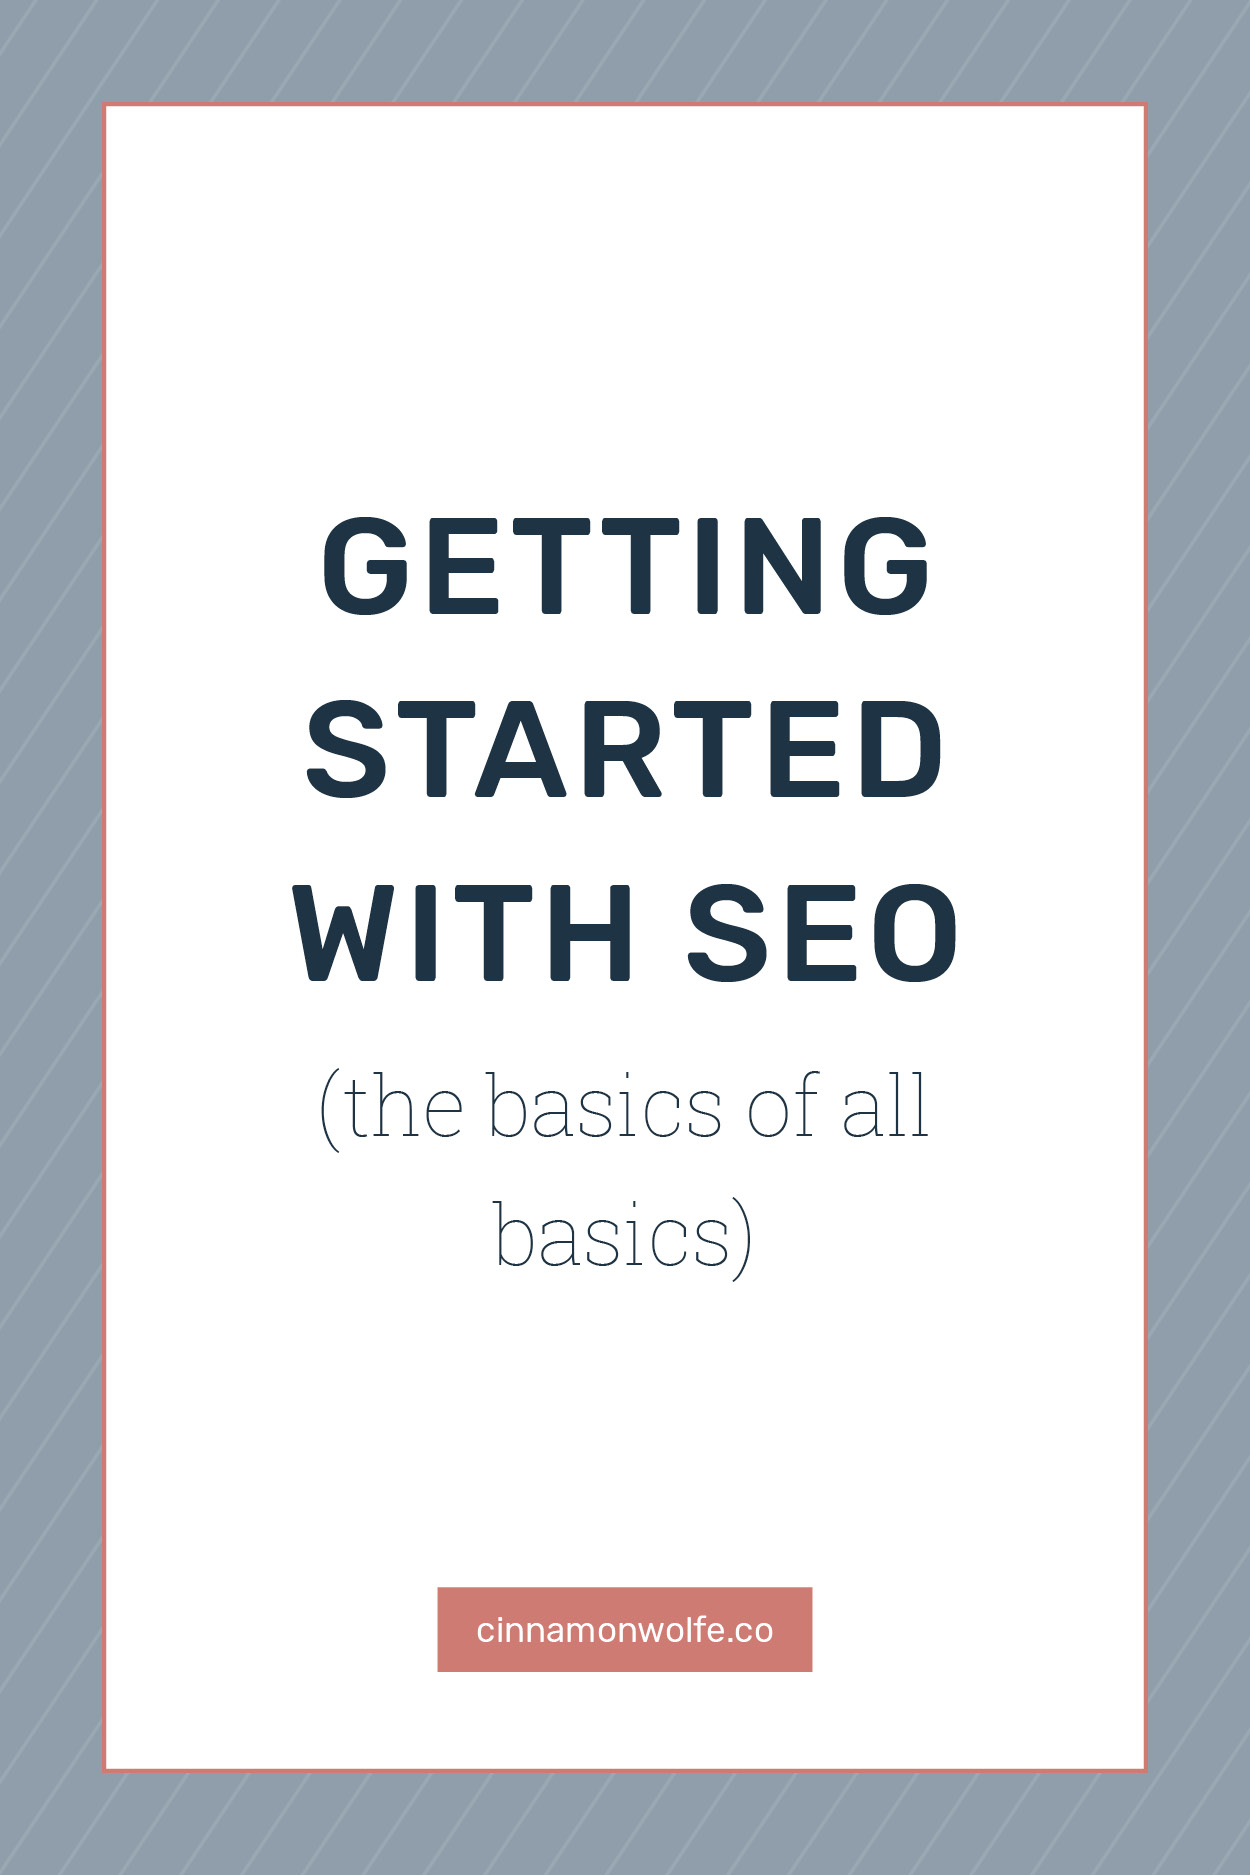 The basics of SEO 2018